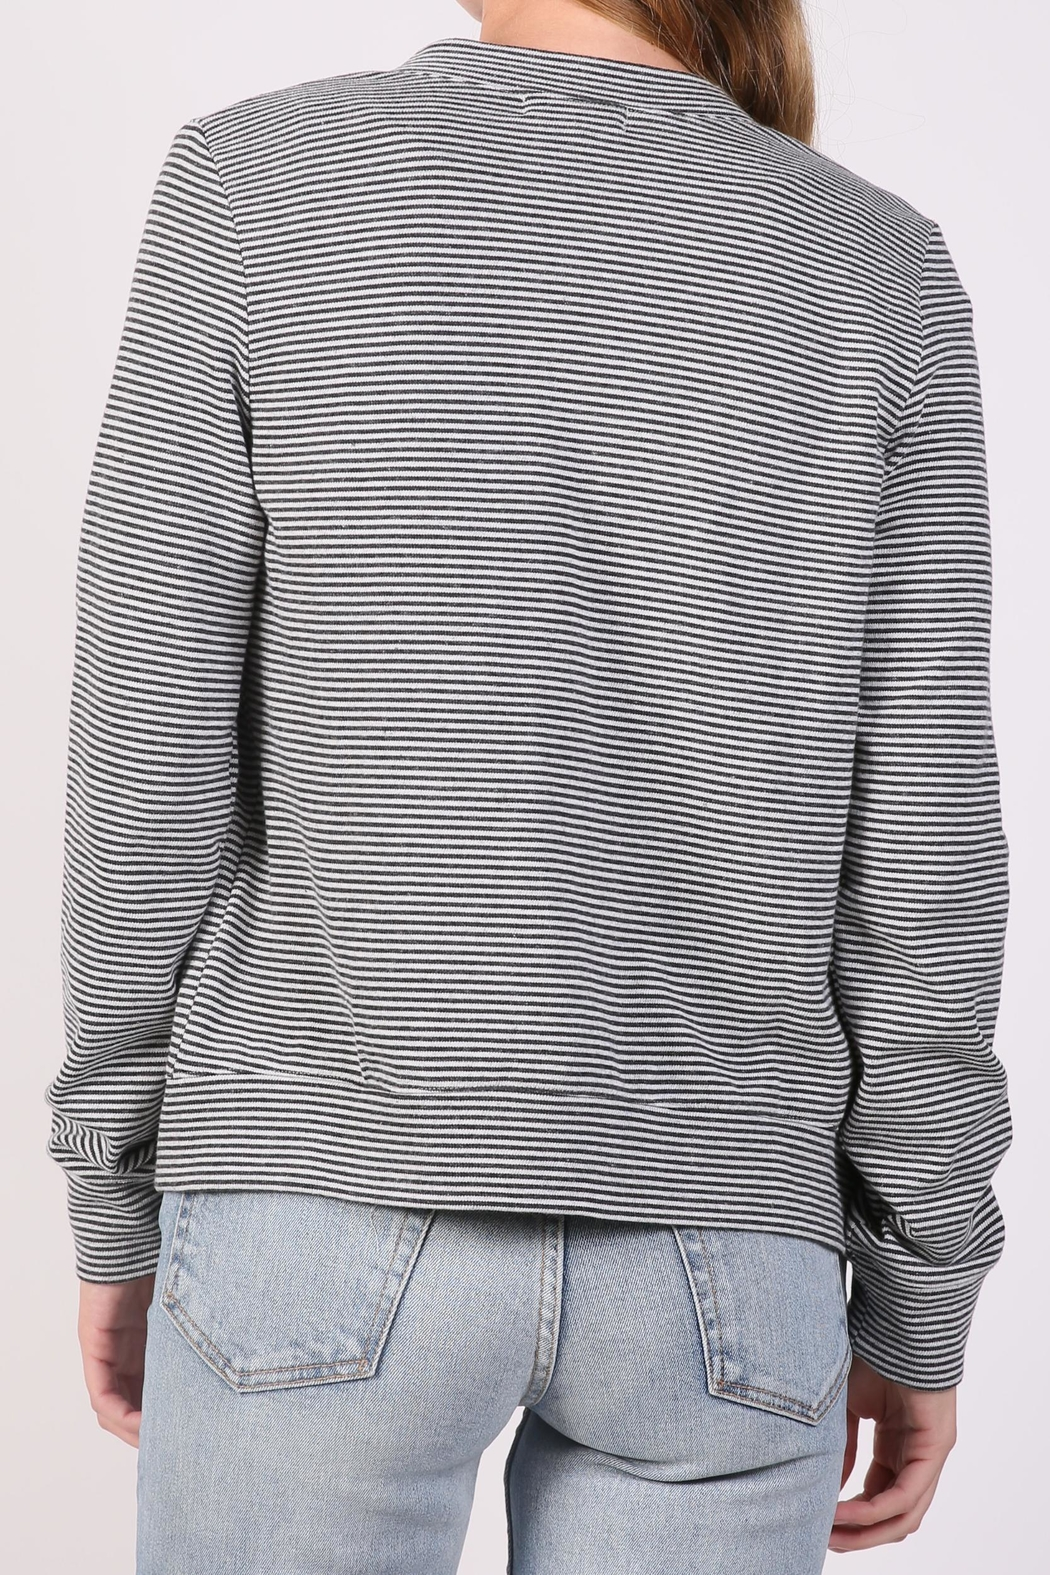 The Lady & The Sailor Striped Cardigan Sweater - Side Cropped Image